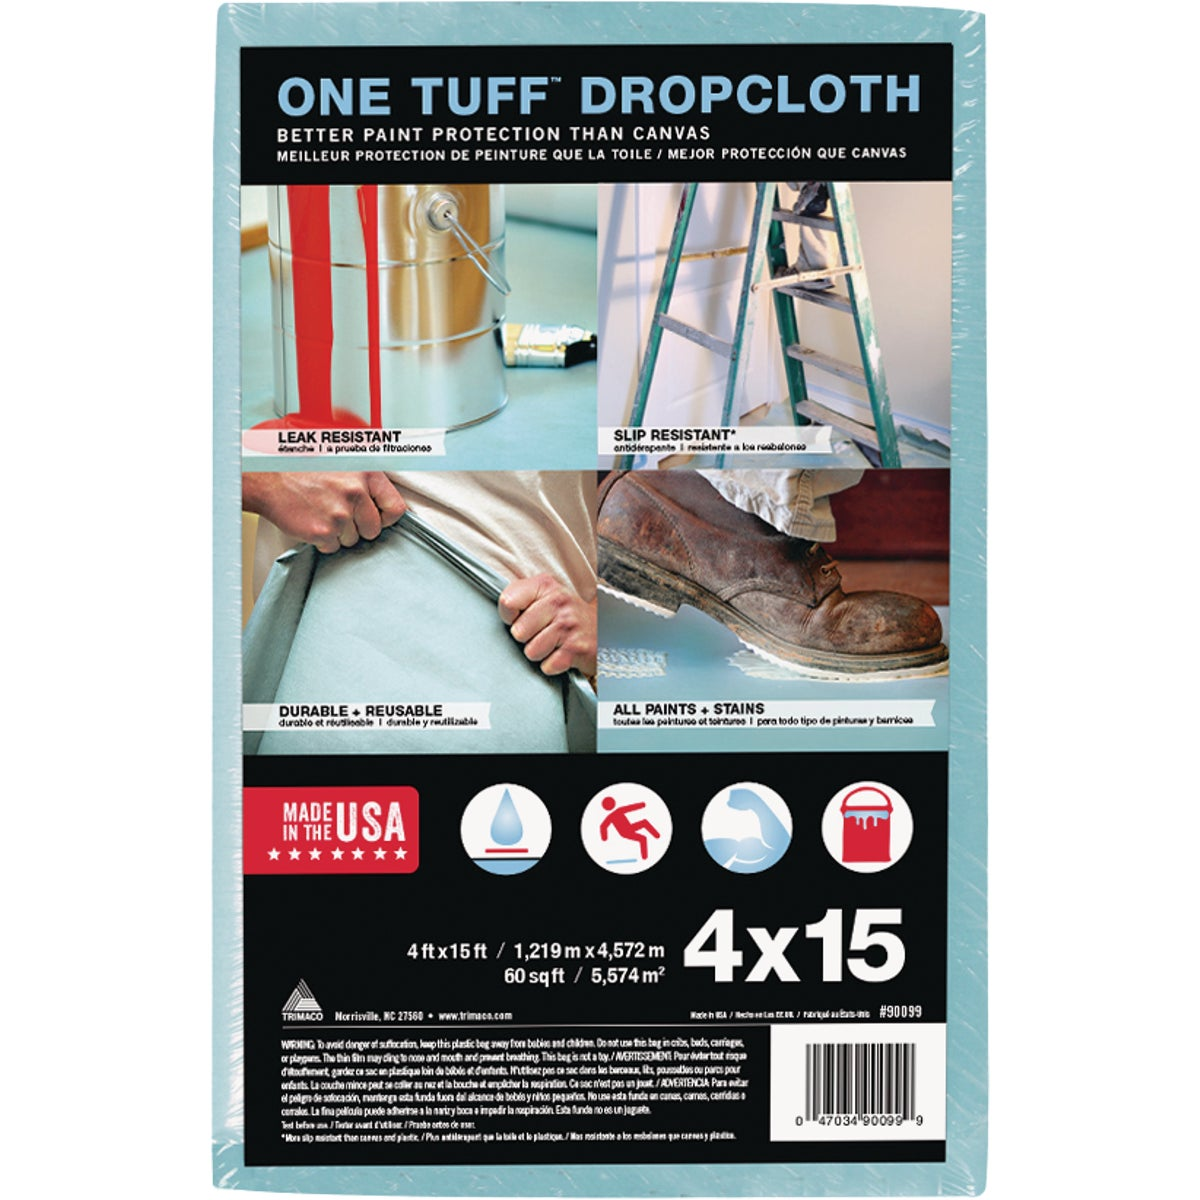 4X15 ONE TUFF DROPCLOTH - 90099 by Trimaco L L C